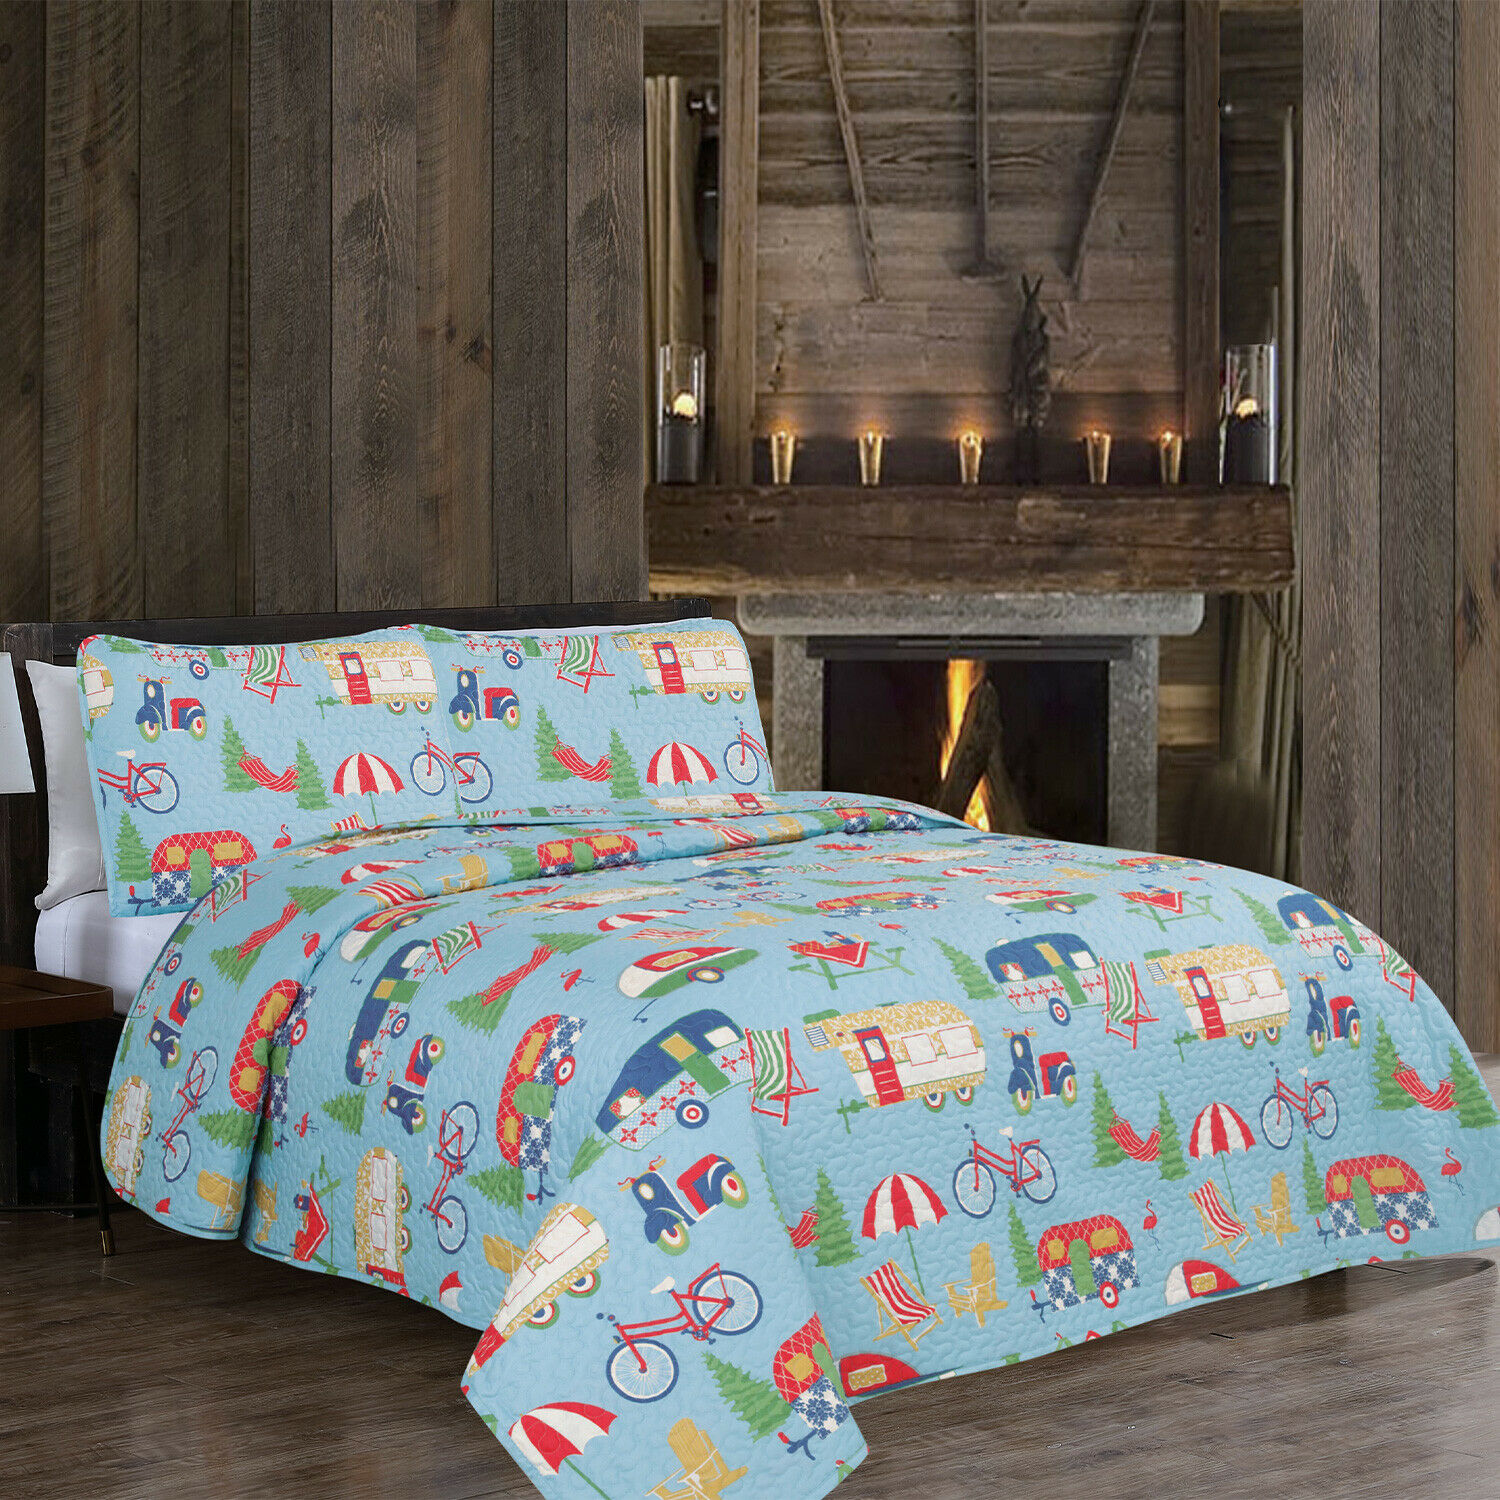 Twin, Full/Queen or King RV Camper Quilt Bedding Set Trees Bikes, Blue Green Red Bedding